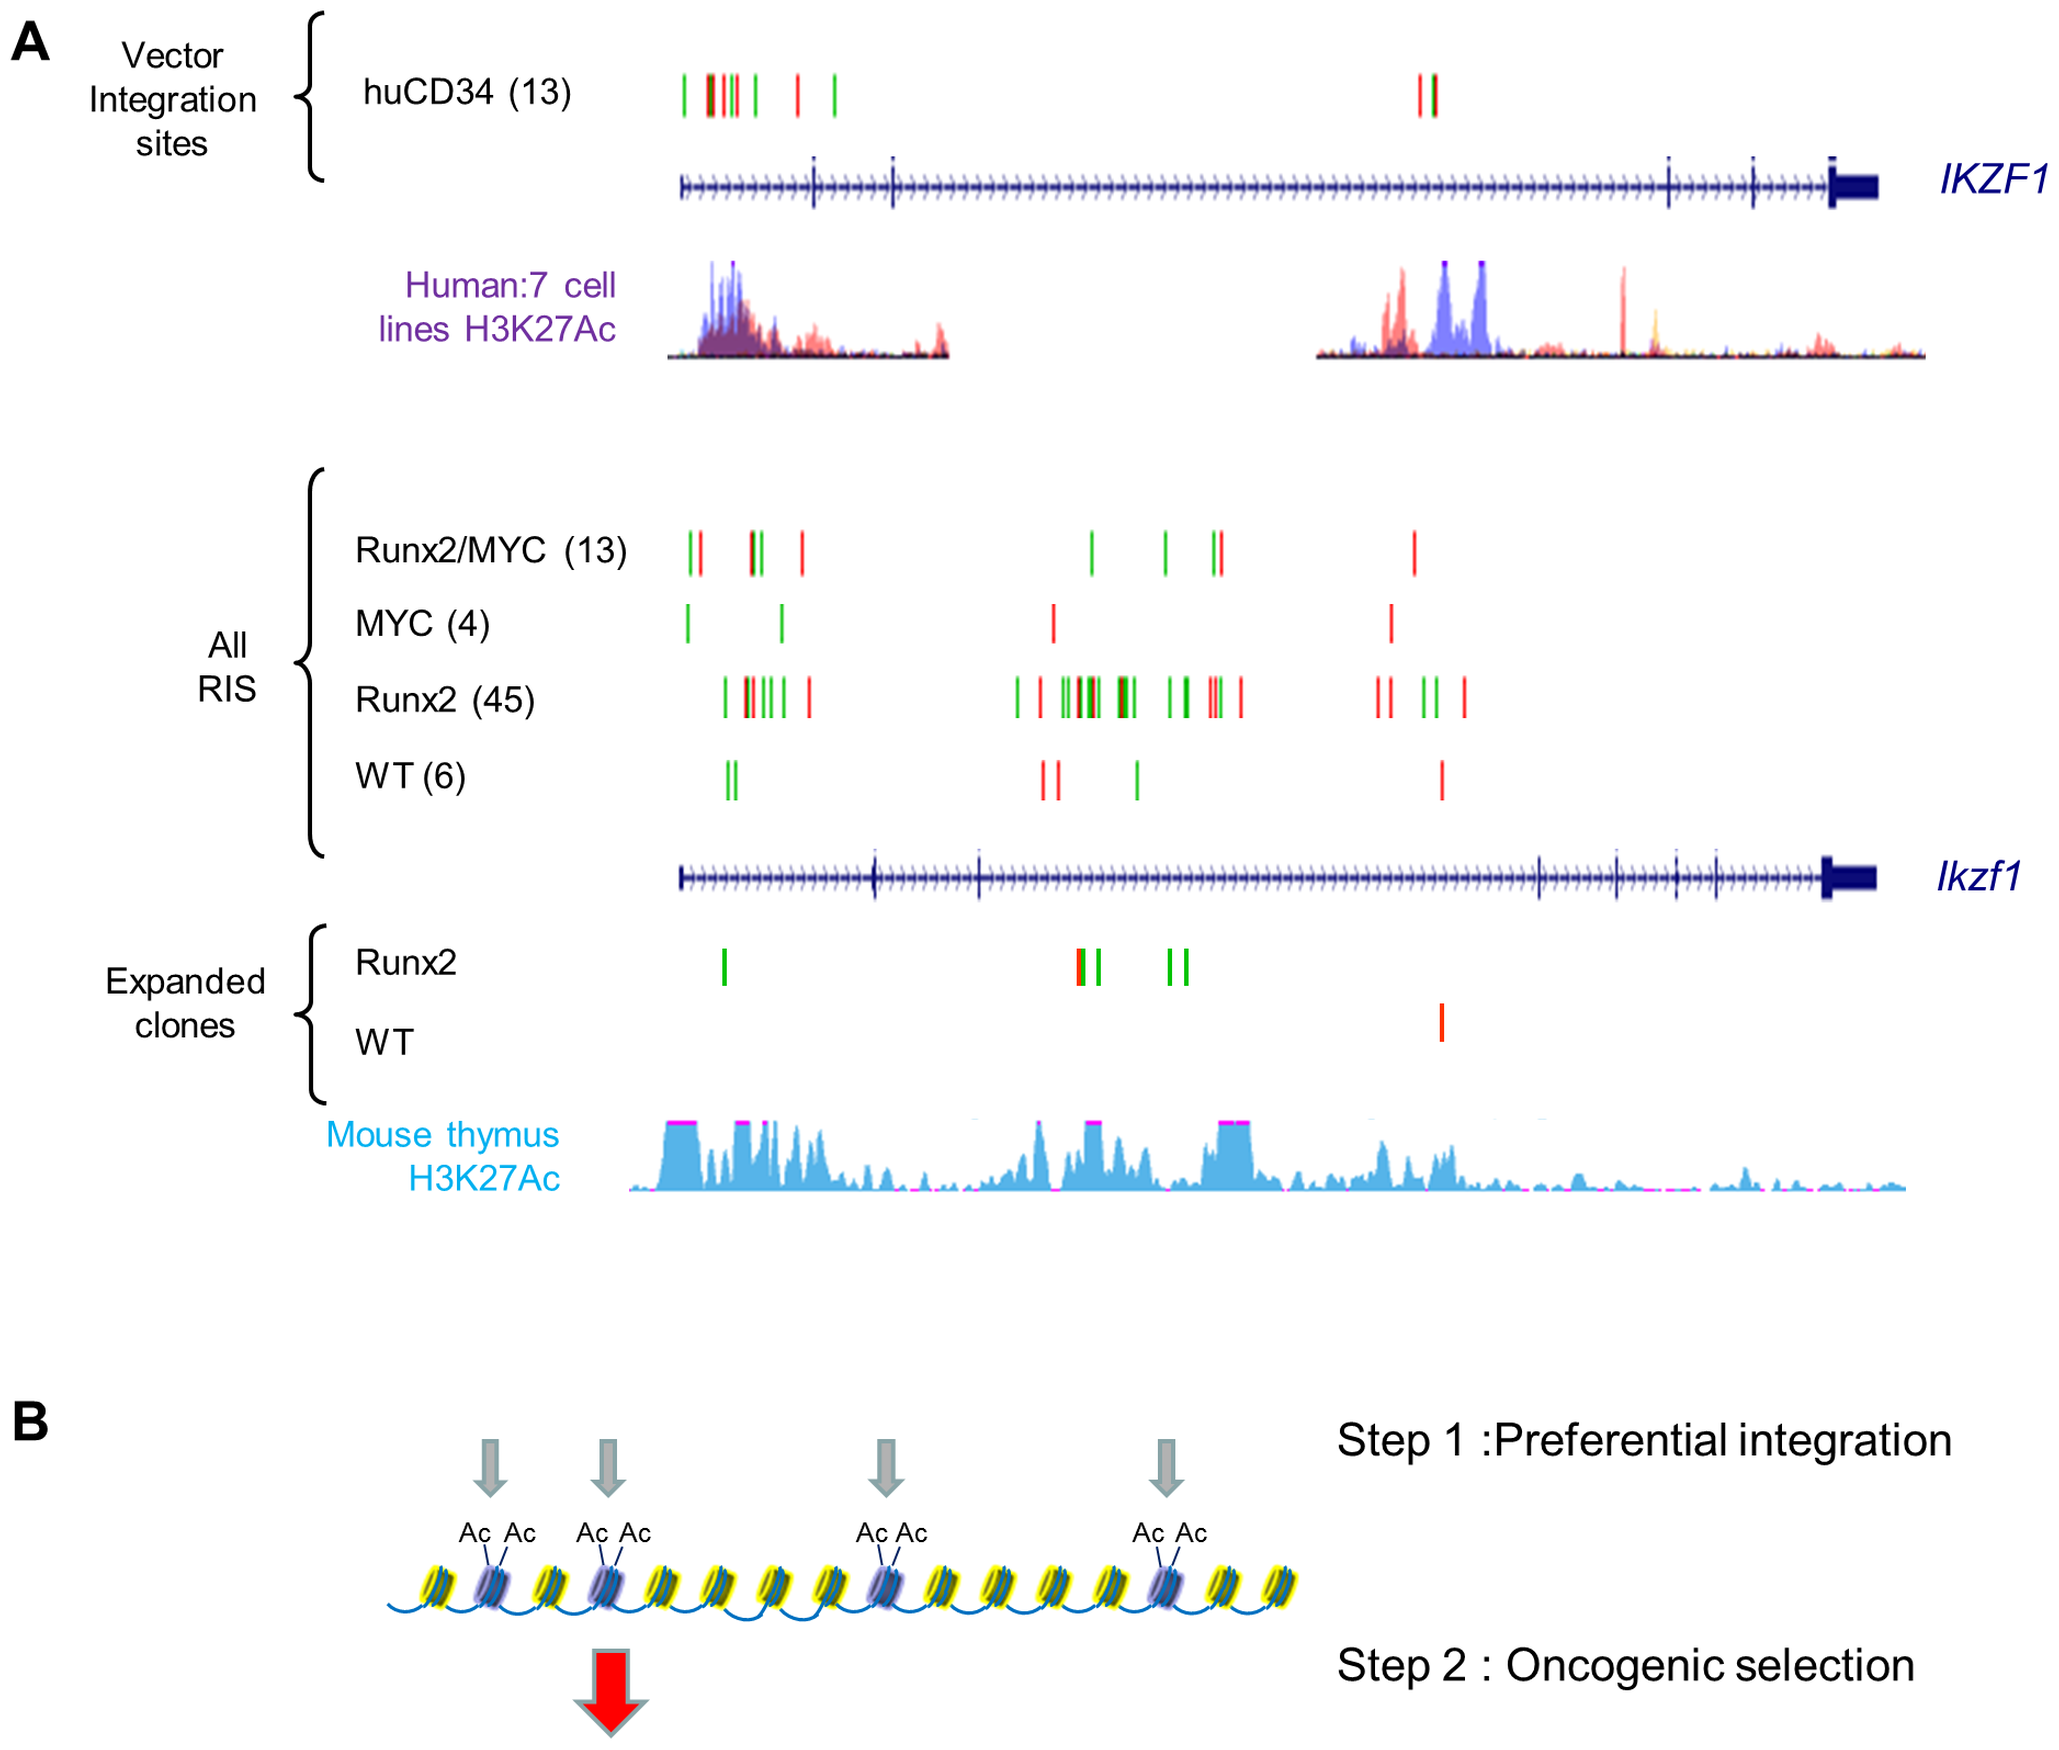 Insertions at <i>Ikzf1</i> display dual features of preferential integration and oncogenic selection.